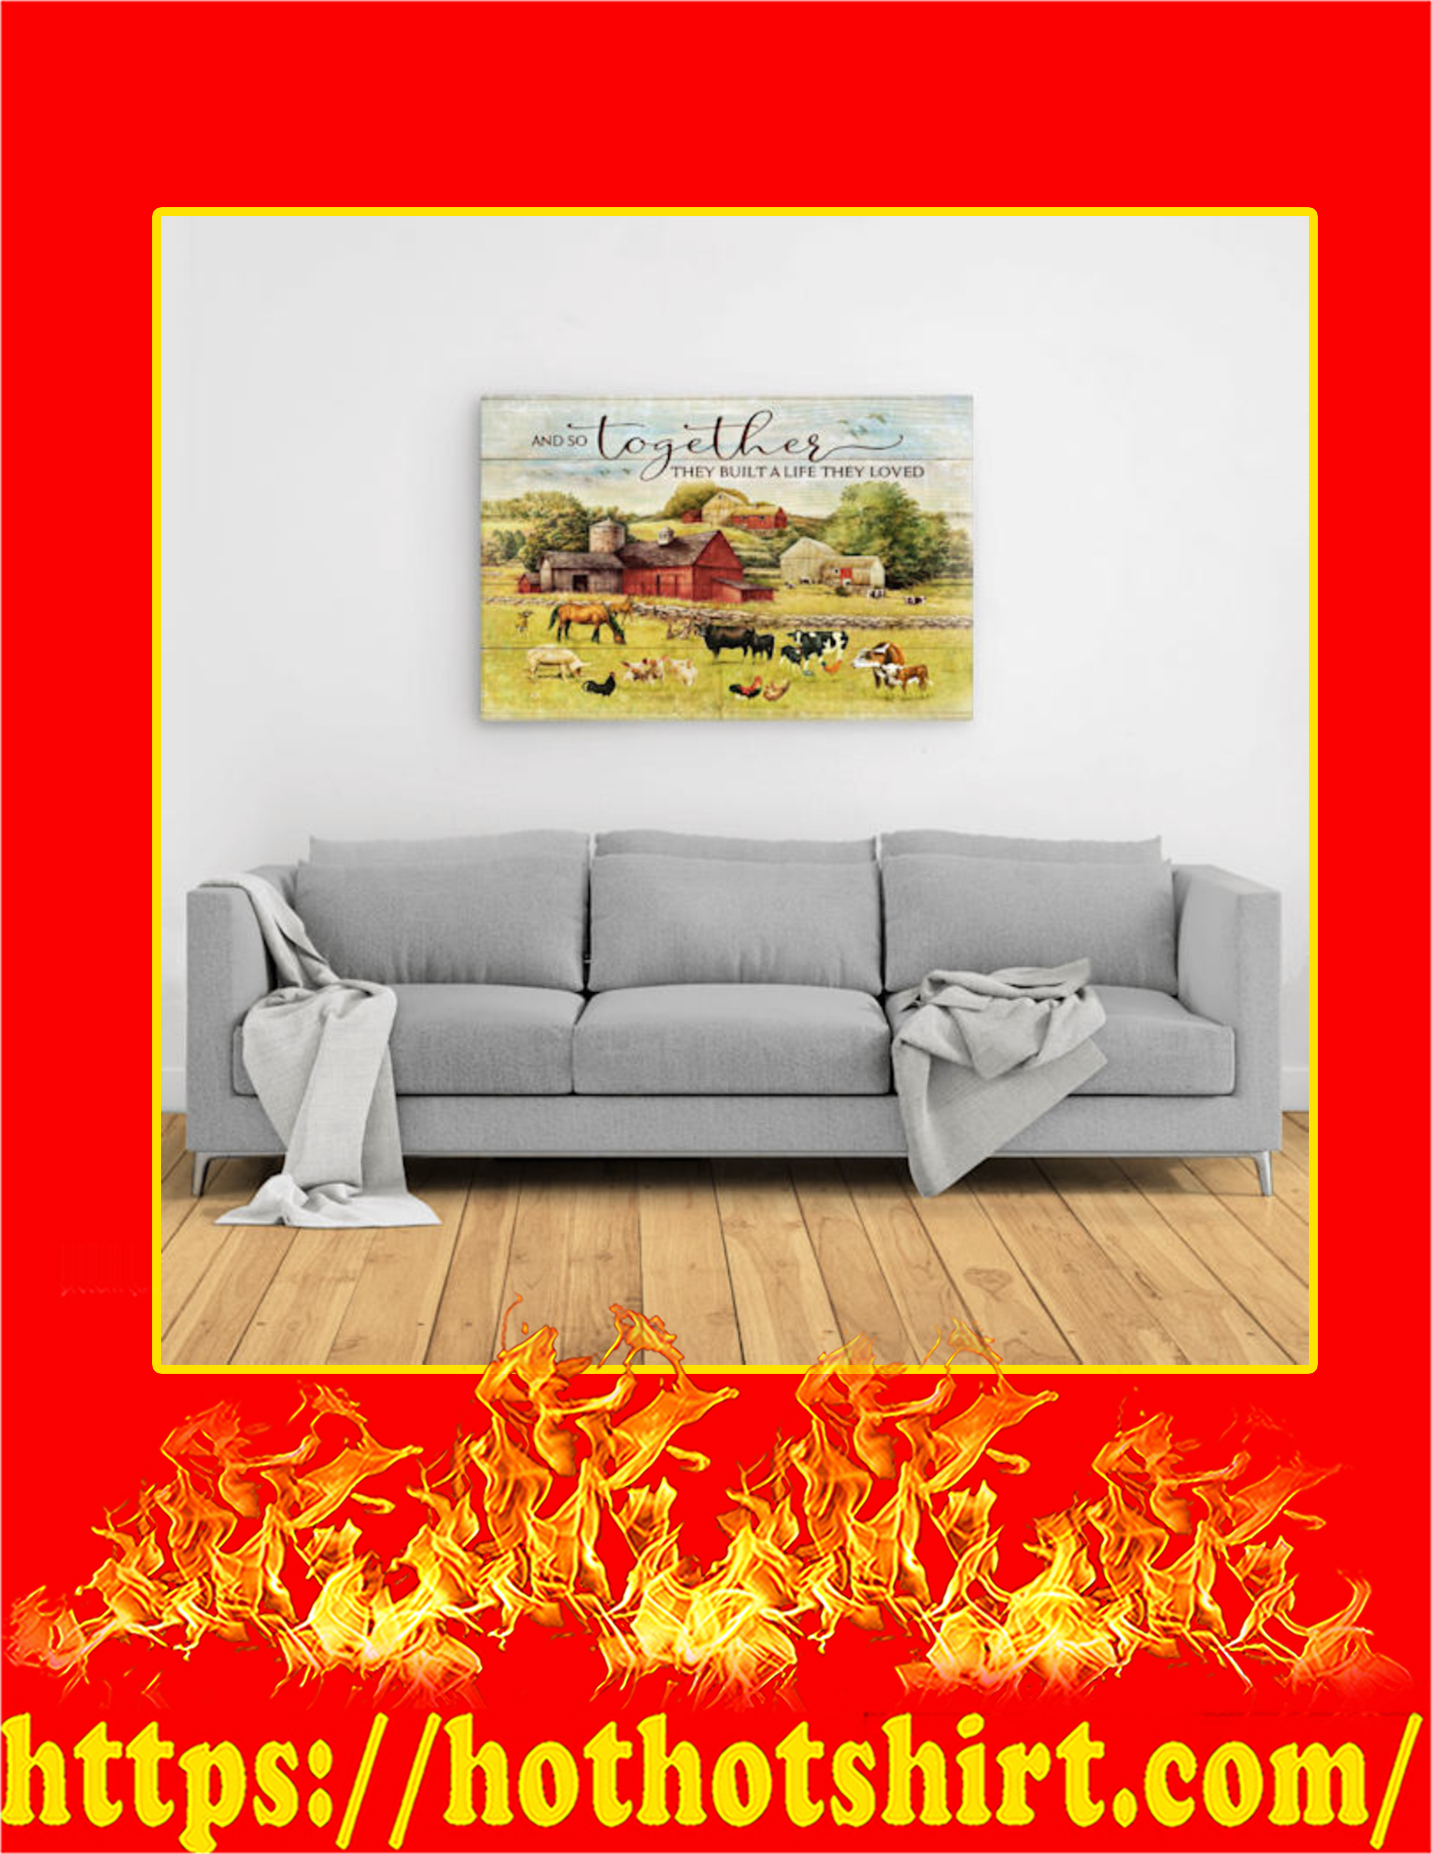 Farm And So Together They Built A Life They Loved Canvas Prints - Large